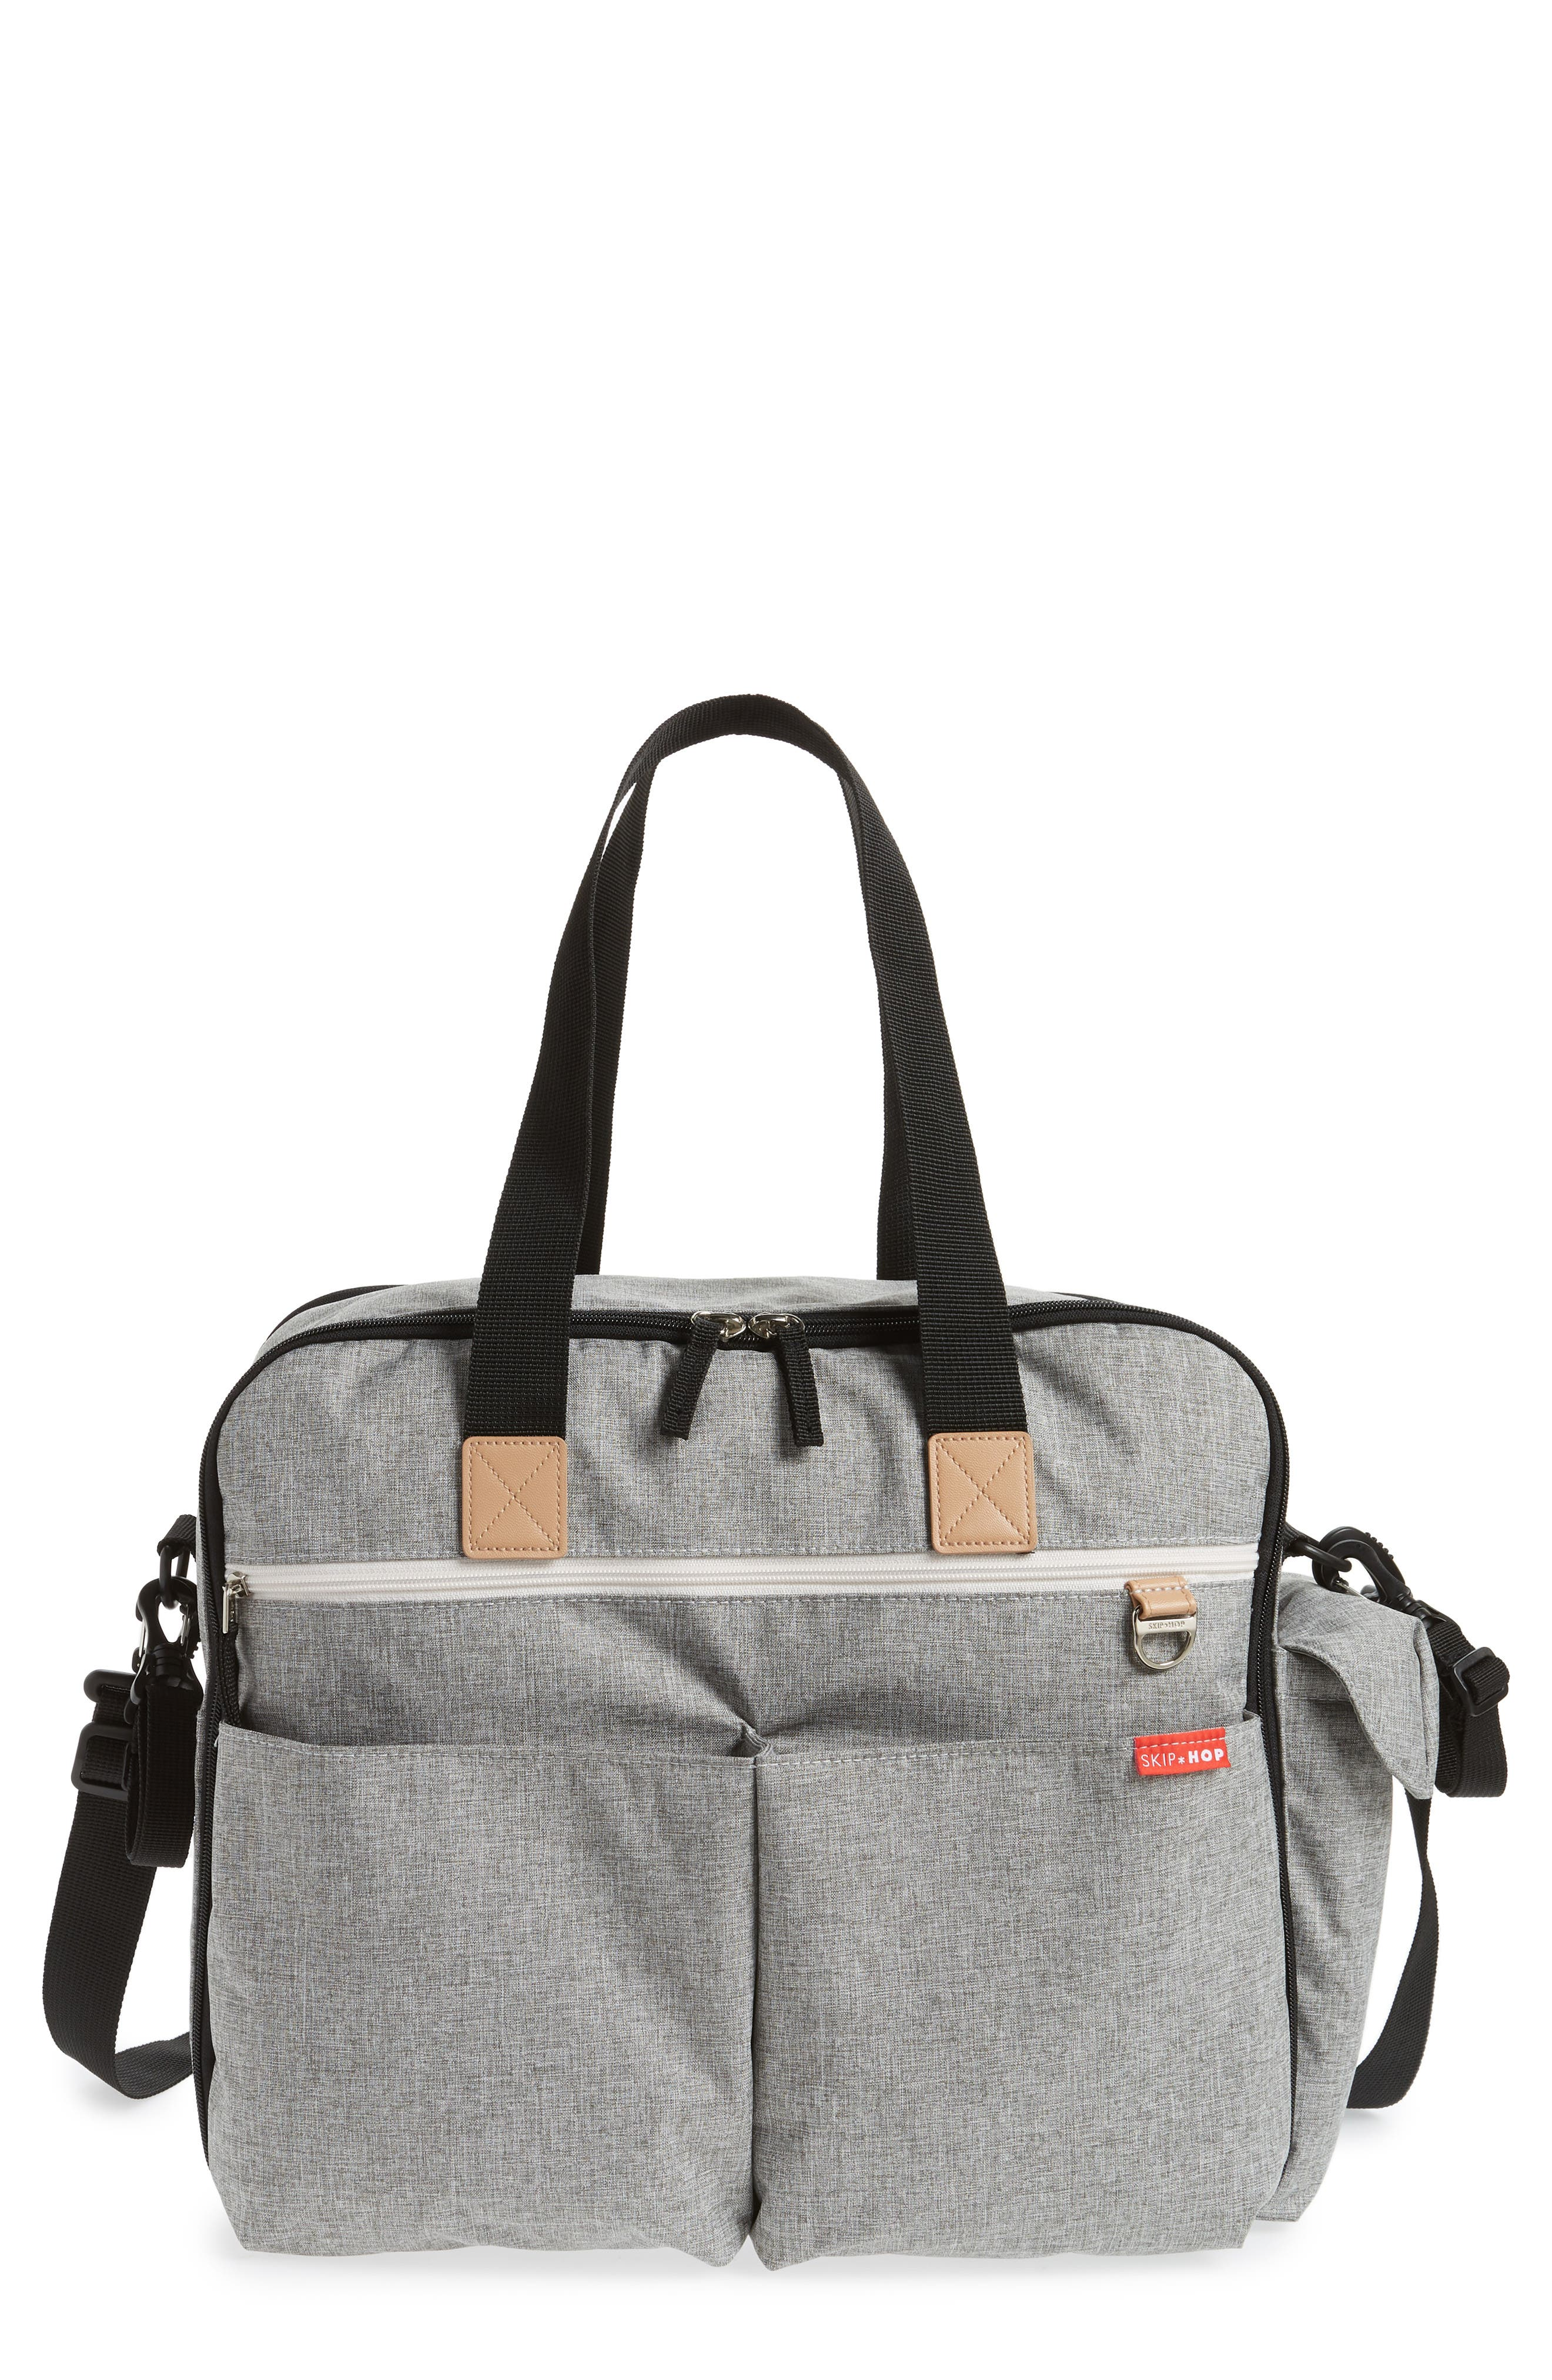 Duo Weekend Diaper Bag,                         Main,                         color, GREY